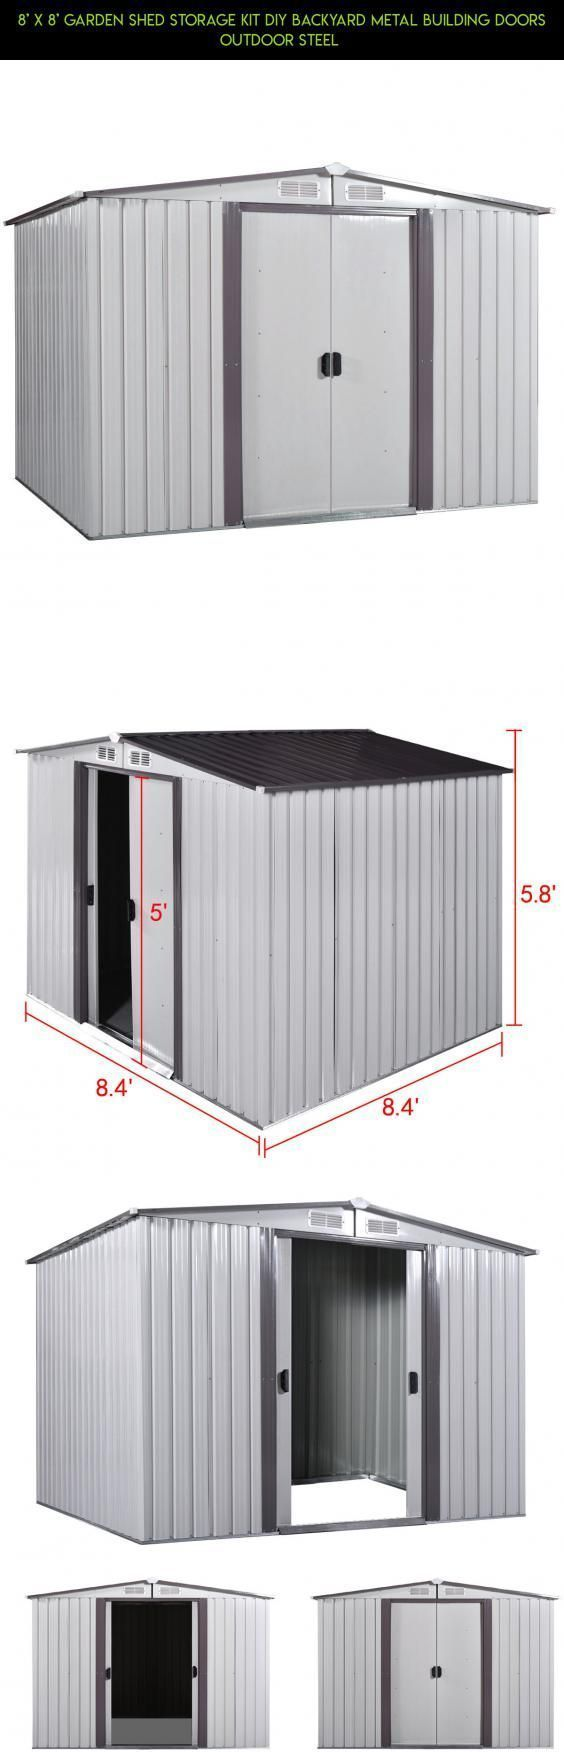 8' x 8' Garden Shed Storage Kit DIY Backyard Metal Building Doors Outdoor Steel  #kit #storage #camera #products #tech #fpv #racing #shopping #drone #gadgets #plans #parts #technology #8x8 #DIYShed8x8